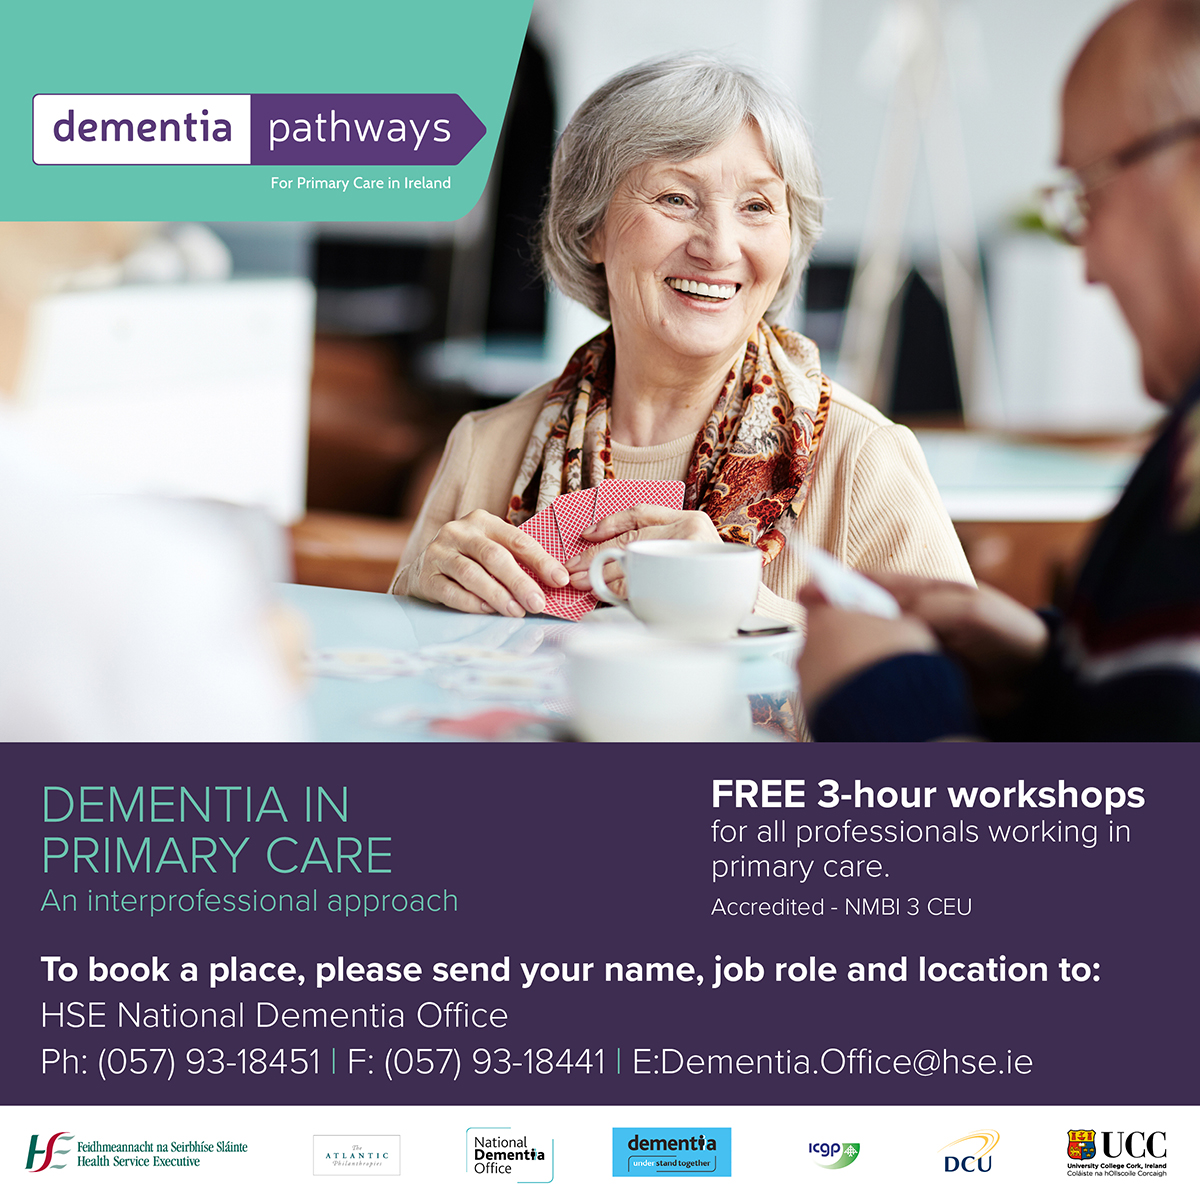 NEW! 2017 dementia training workshops for primary care